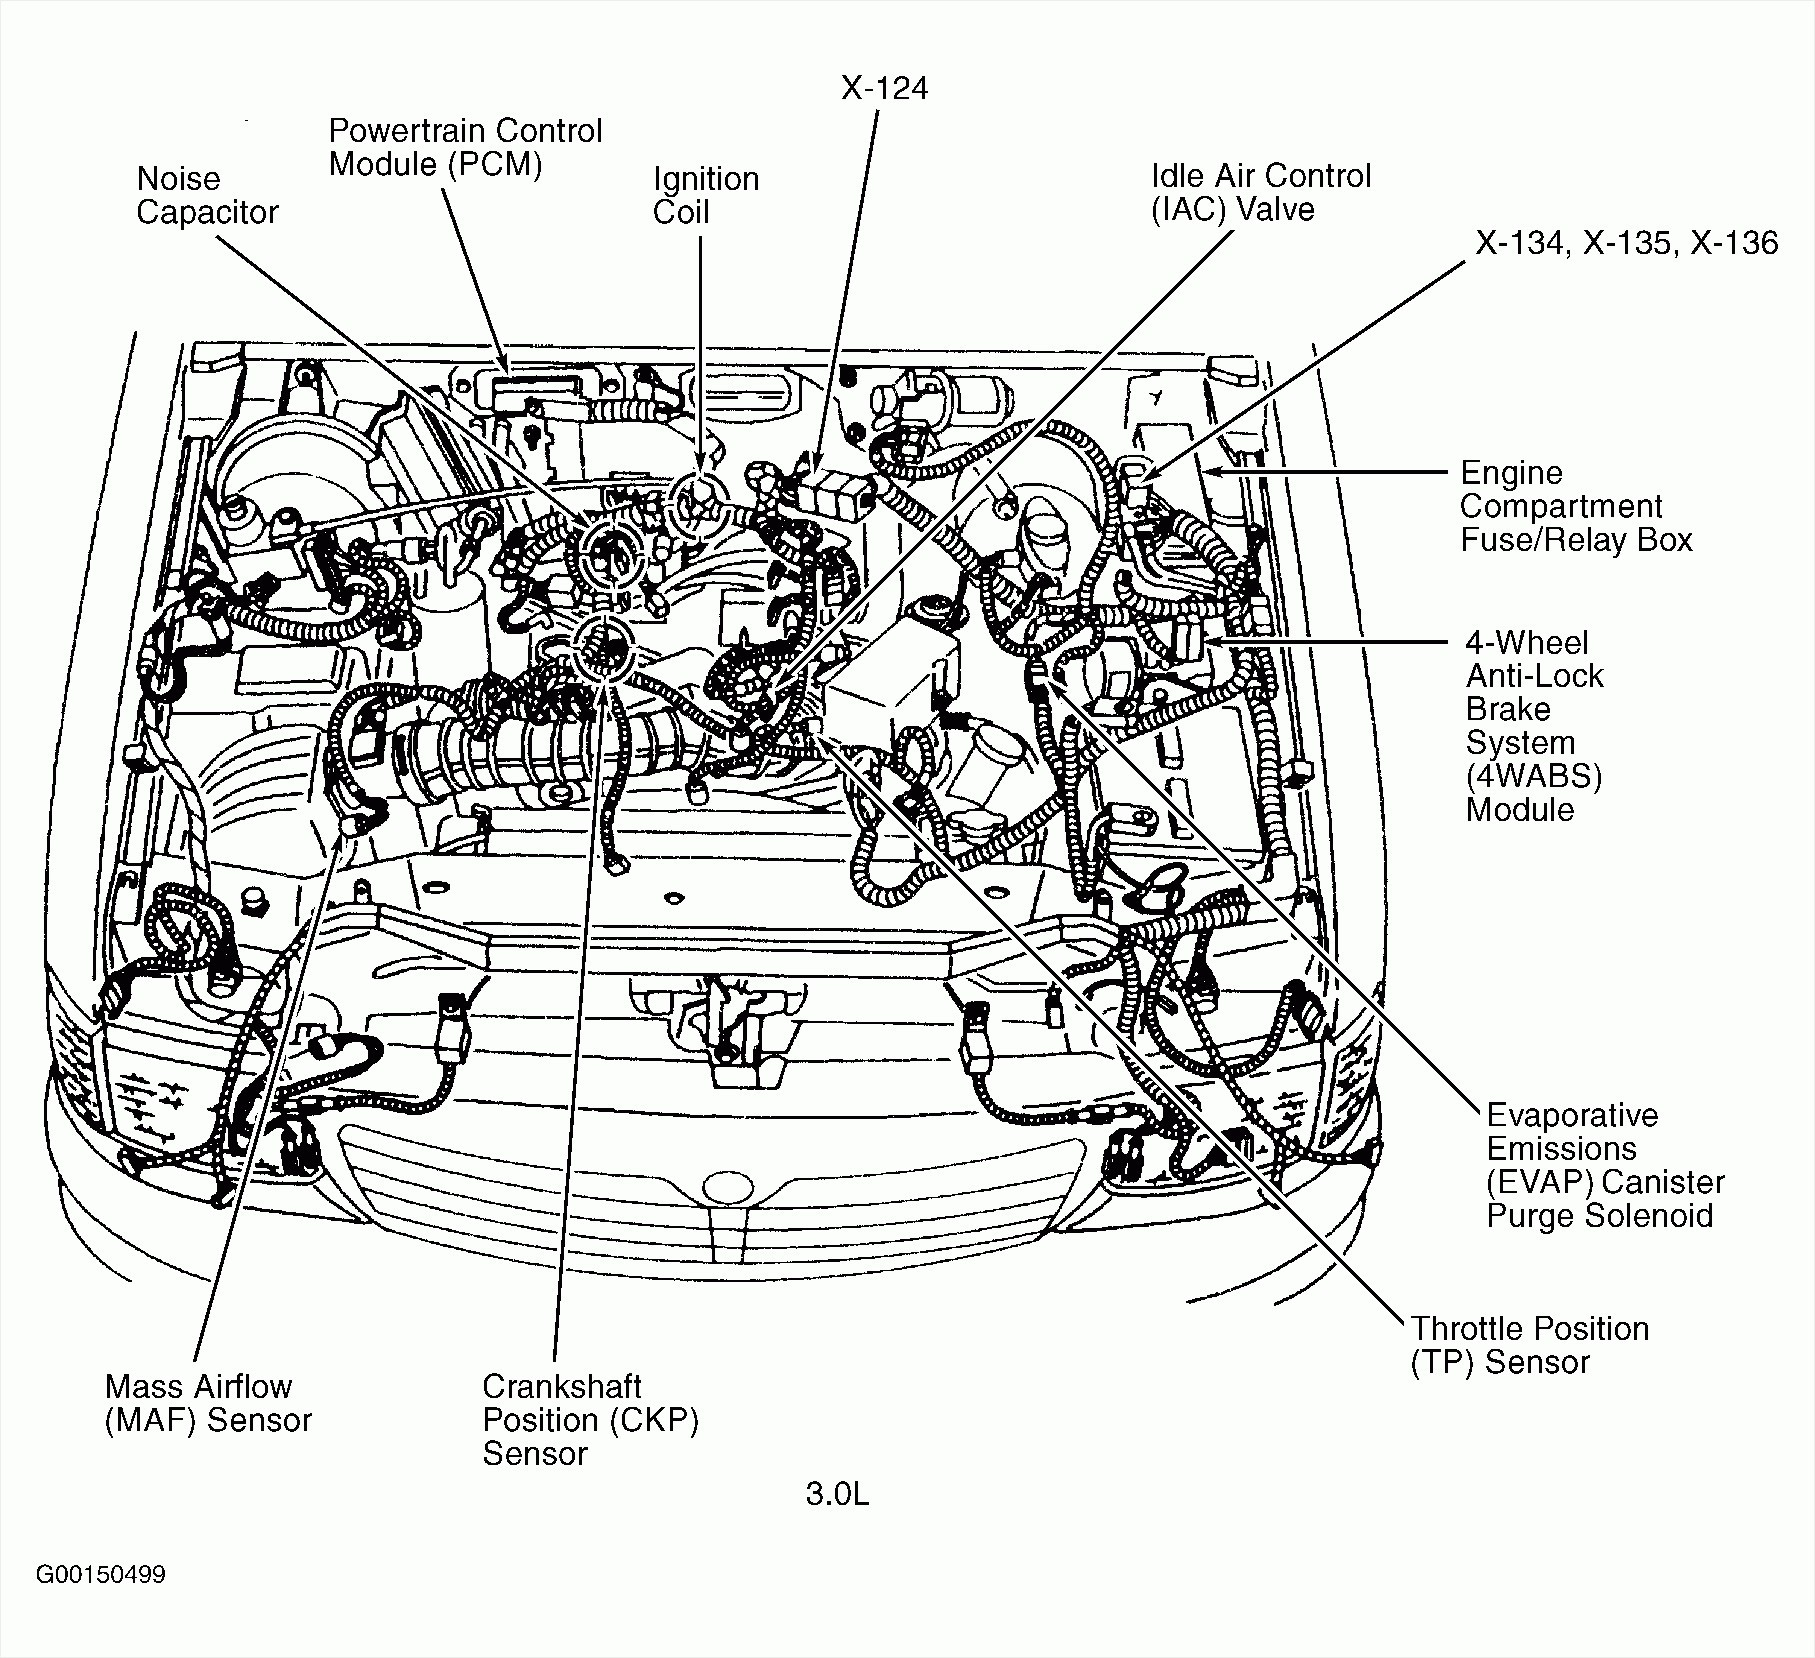 2010 mazda 3 engine diagram wiring diagrams for mazda 3 mazda wiring diagrams instructions of 2010 mazda 3 engine diagram i2 wp com detoxicrecenze com wp content uploads 20